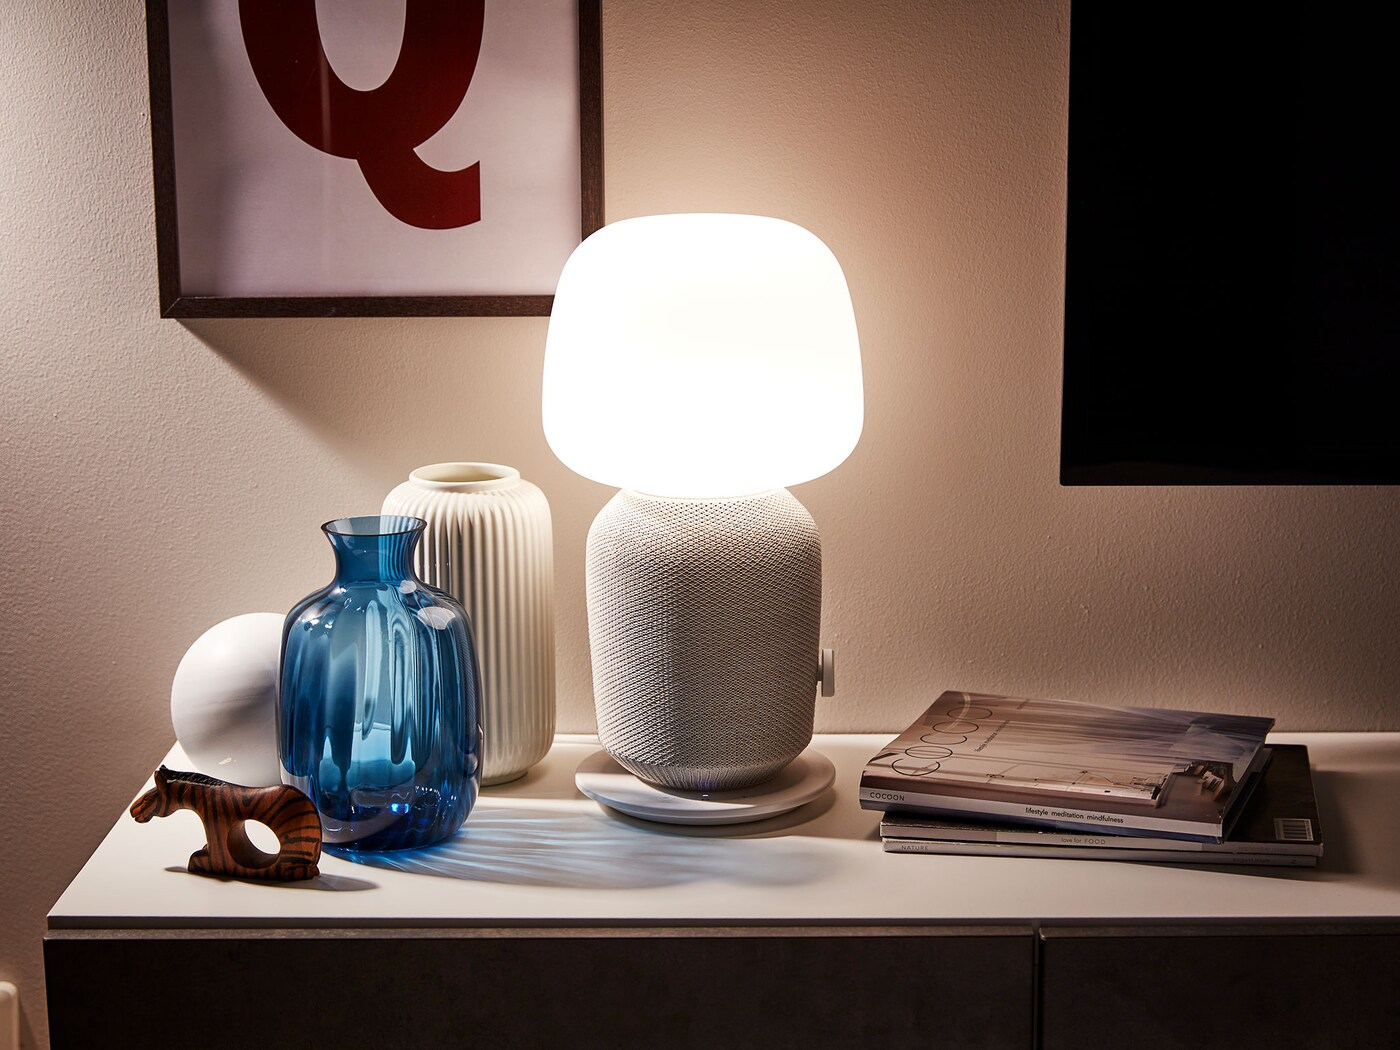 SYMFONISK table lamp speaker in white and grey shown against a white background.